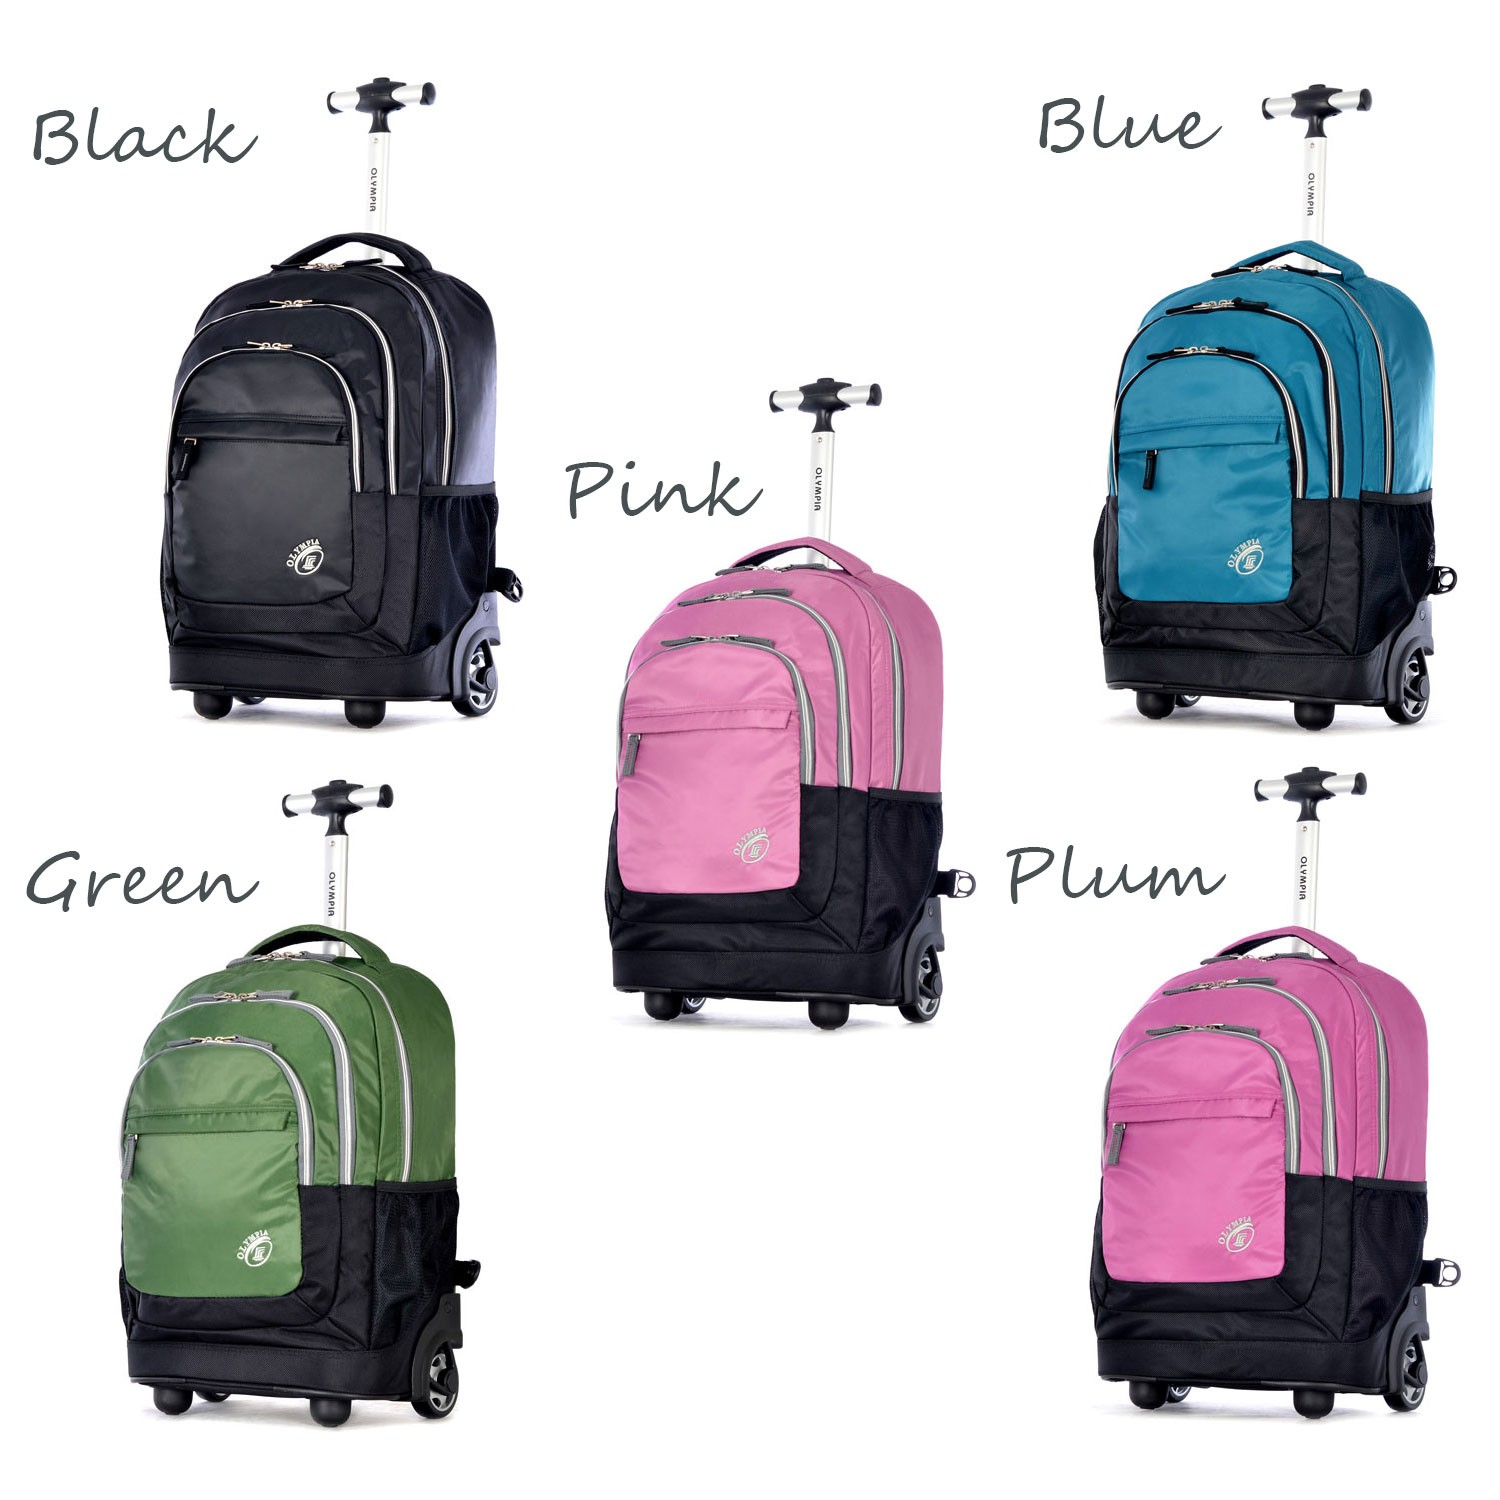 Rolling Backpacks, Wheeled Laptop Backpacks, Hiking Backpacks, and ...